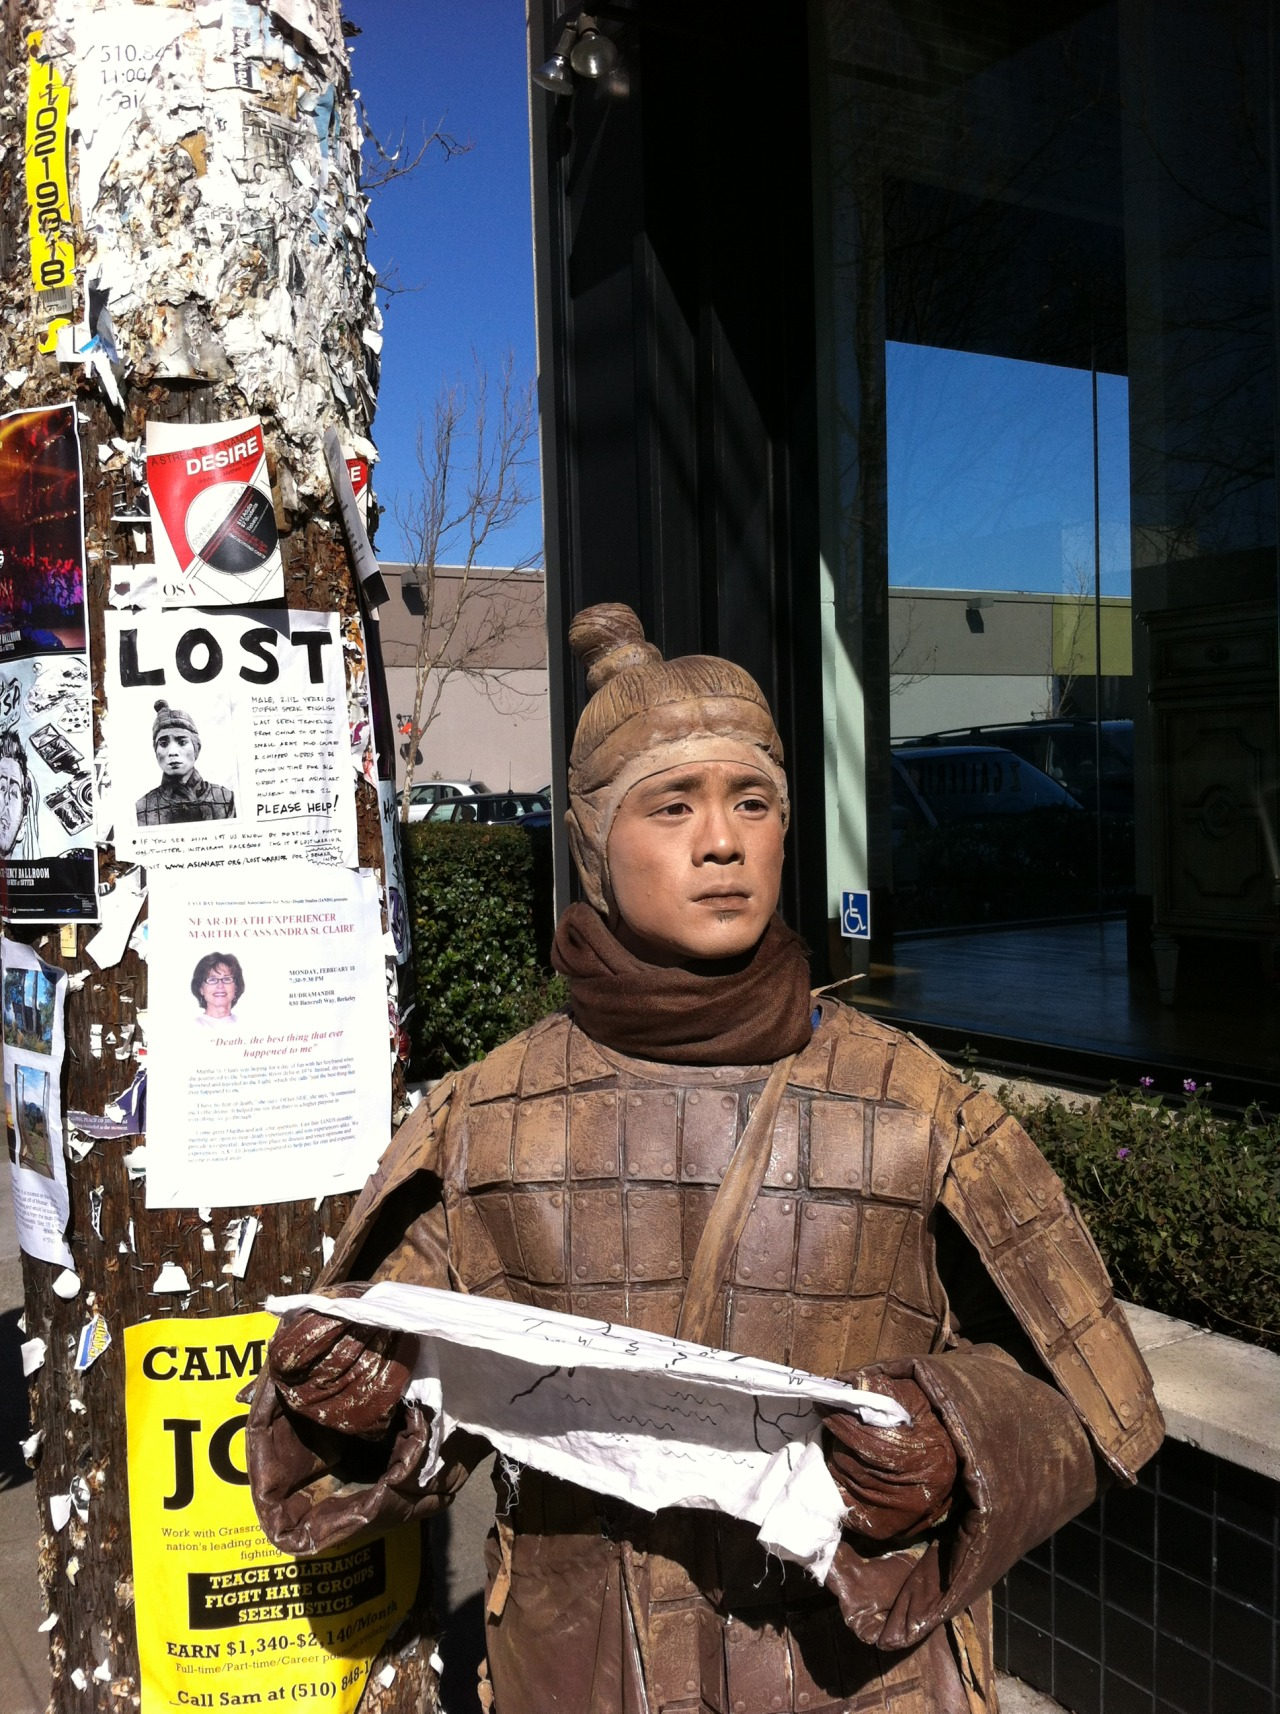 Since January 24, we've had a wayward terracotta warrior on the loose in the Bay Area. We've gotta find him in time for the opening of the exhibition, China's Terracotta Warriors: The First Emperor's Legacy at the Asian Art Museum on Feb 22 (gulp) — next Friday! If you see him, take a photo and post on Twitter and/or Instagram (your accounts must be set to public) and tag it #LOSTWARRIOR. If you have suggestions, tips, leads, please share on Twitter and tag it #LOSTWARRIOR. All posts from the public will show up on this interactive website. So far he's been in San Jose, Milpitas, Palo Alto, Mountain View, Menlo Park, Oakland, and Berkeley. Hopefully he'll find his way back to San Francisco this week.  Please check this site for the latest updates, photos, his whereabouts, etc: